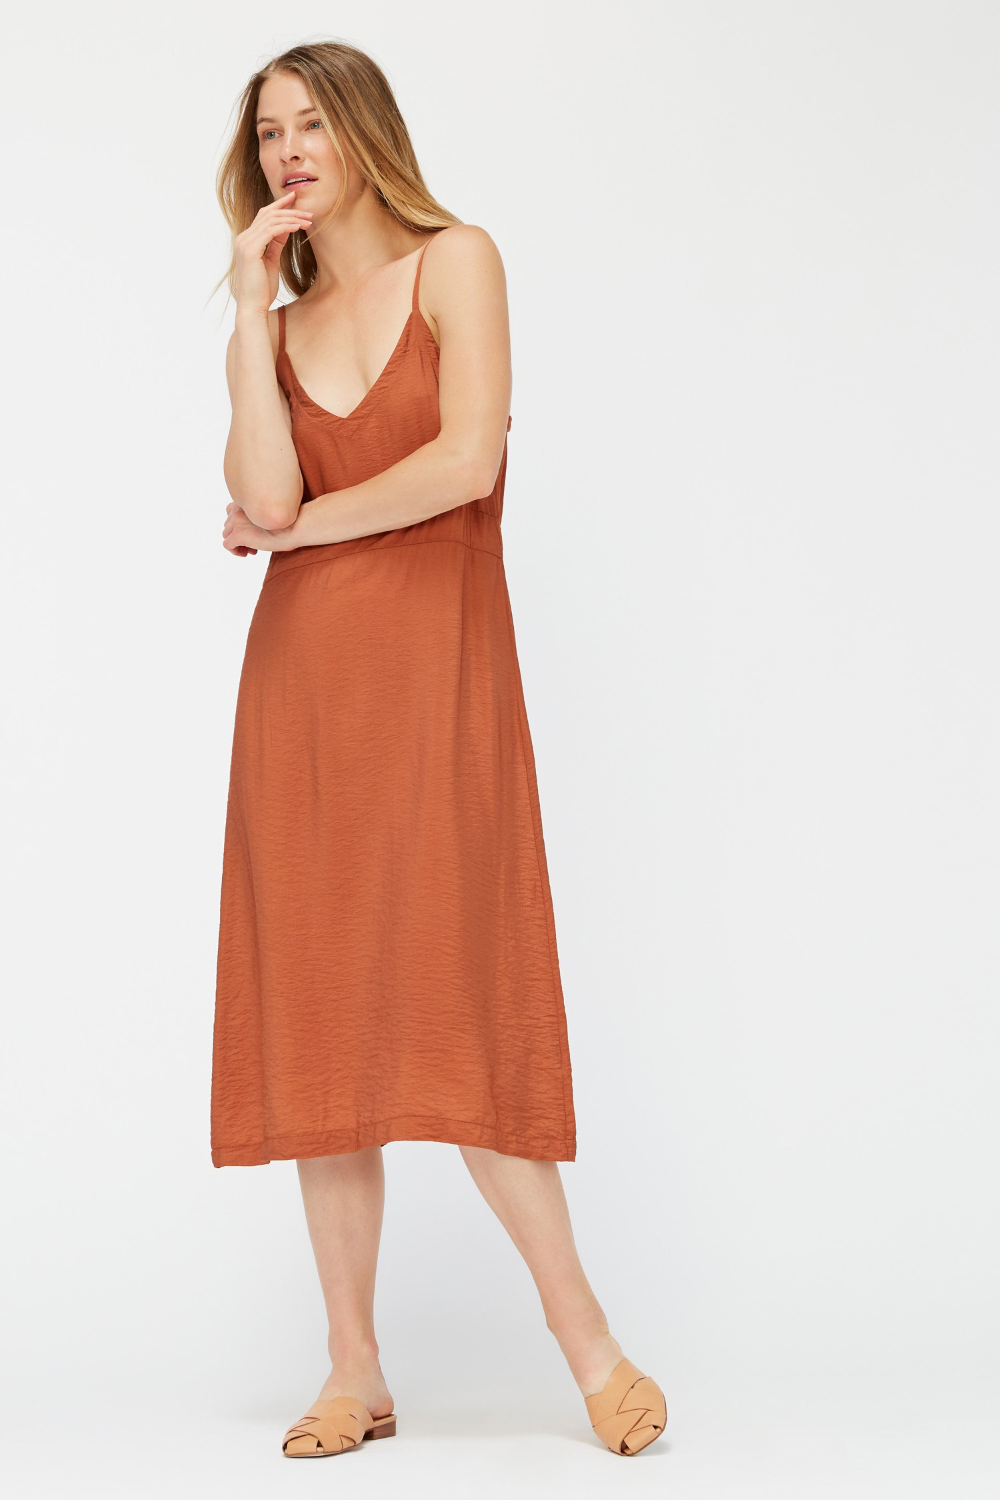 Lacausa Alma Slip Dress in Almond